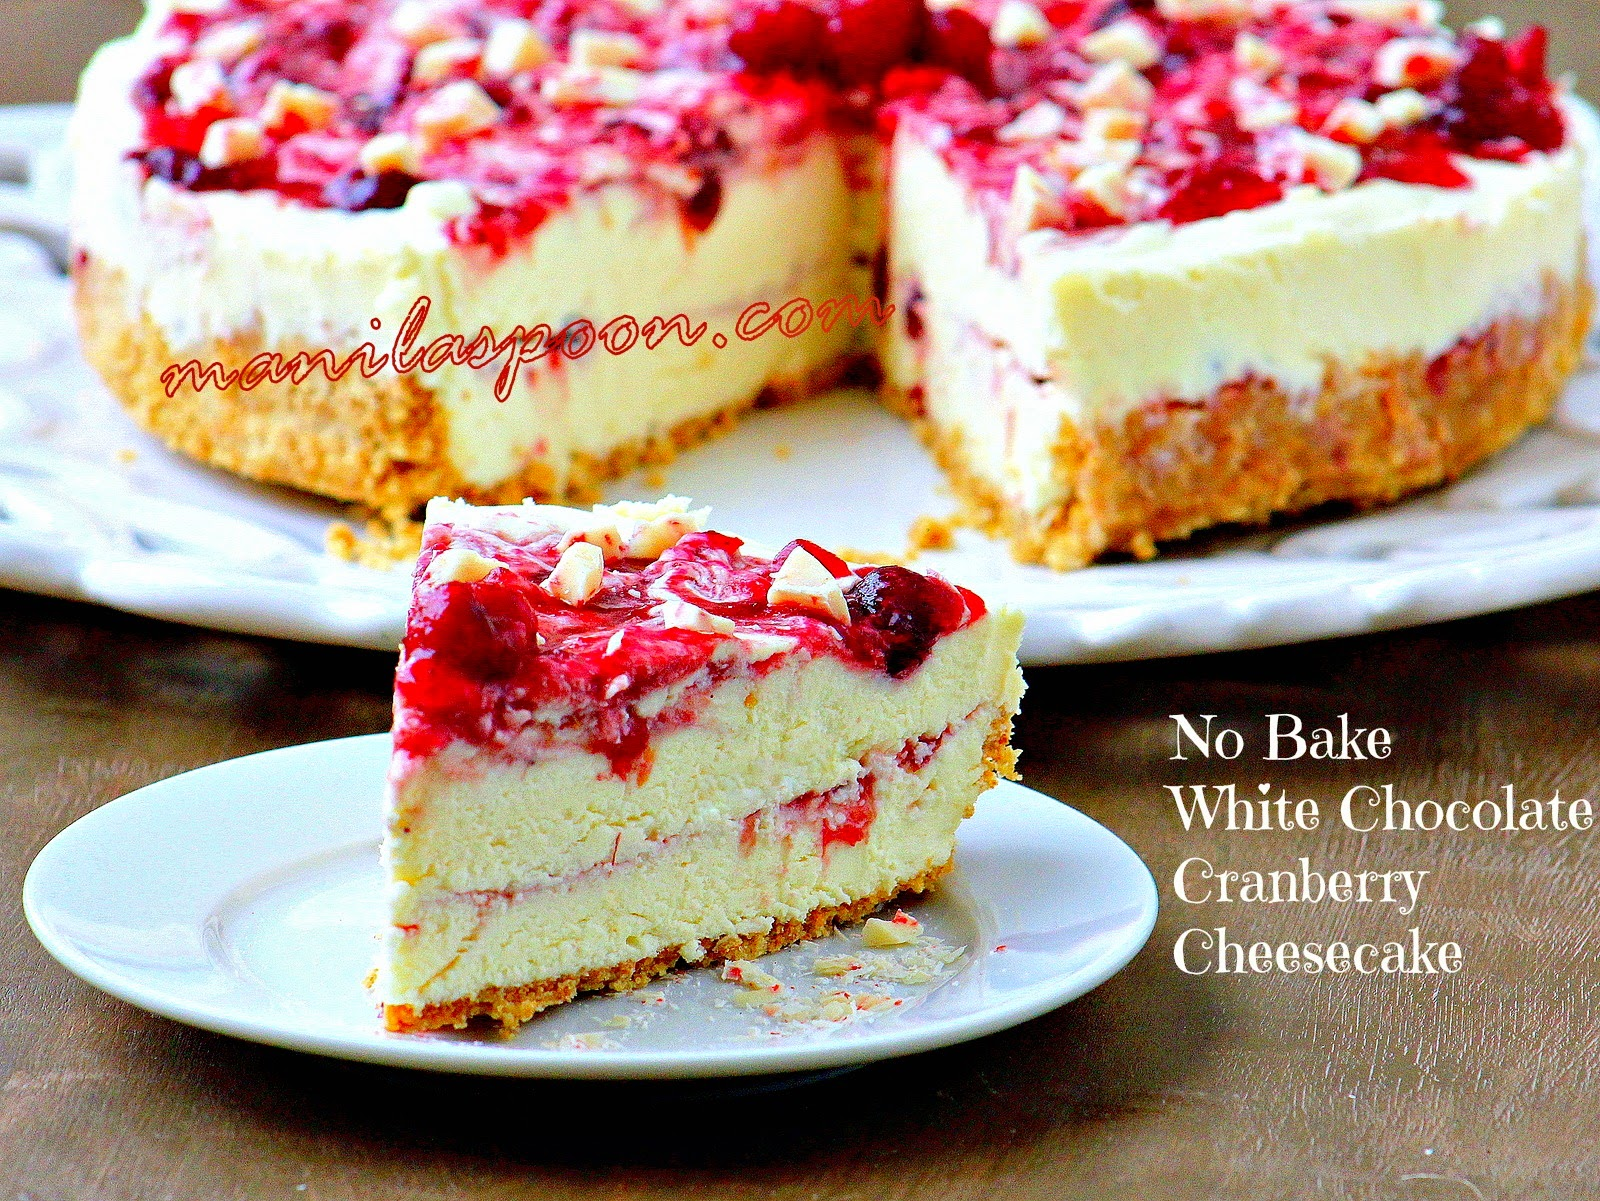 No Bake White Chocolate Cranberry Cheesecake | Manila Spoon